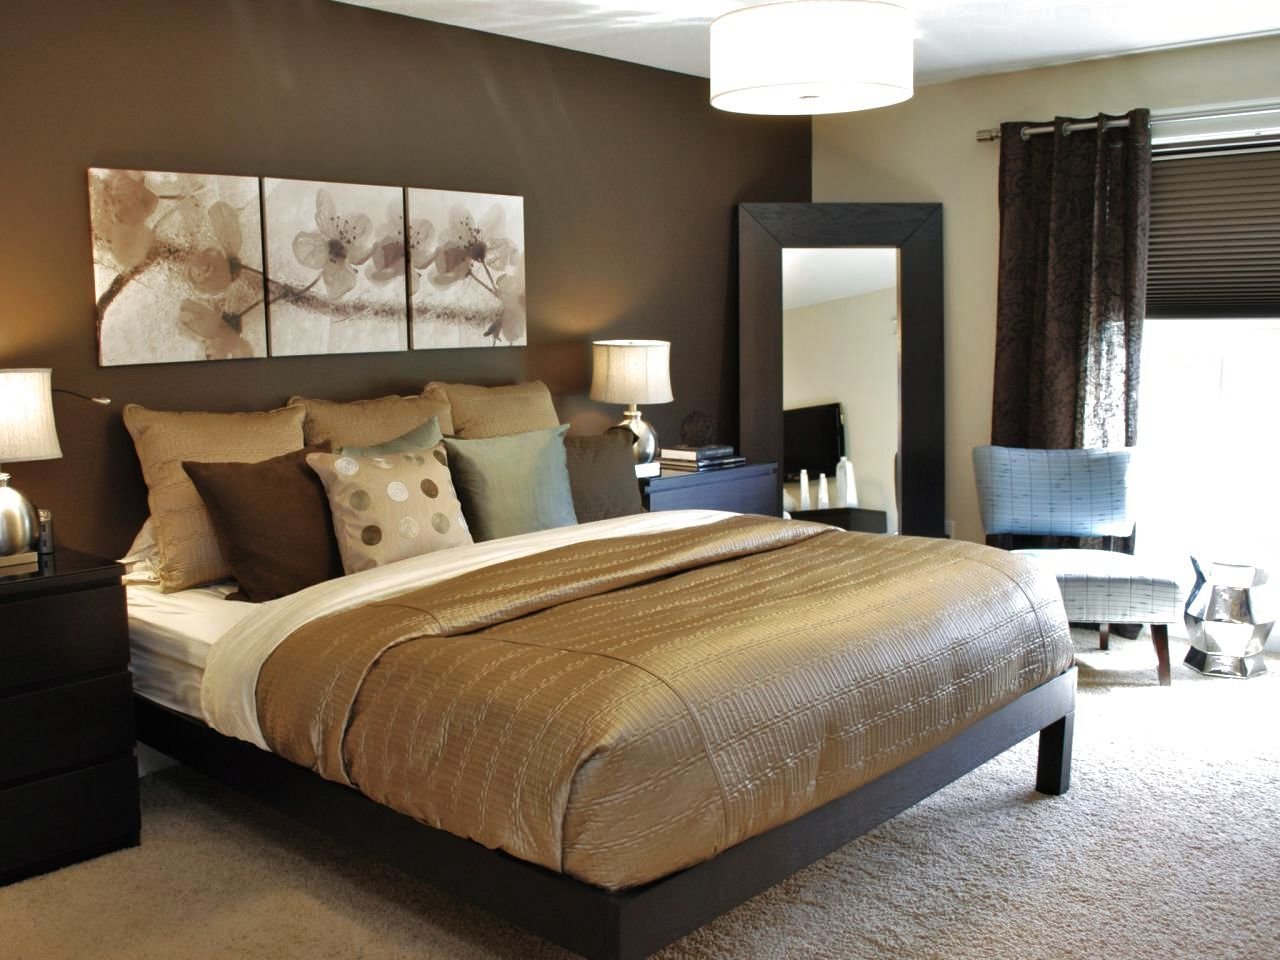 Awesome Brown Bedroom Ideas Color Schemes For The Luxury Within - Design on a dime ideas bedroom